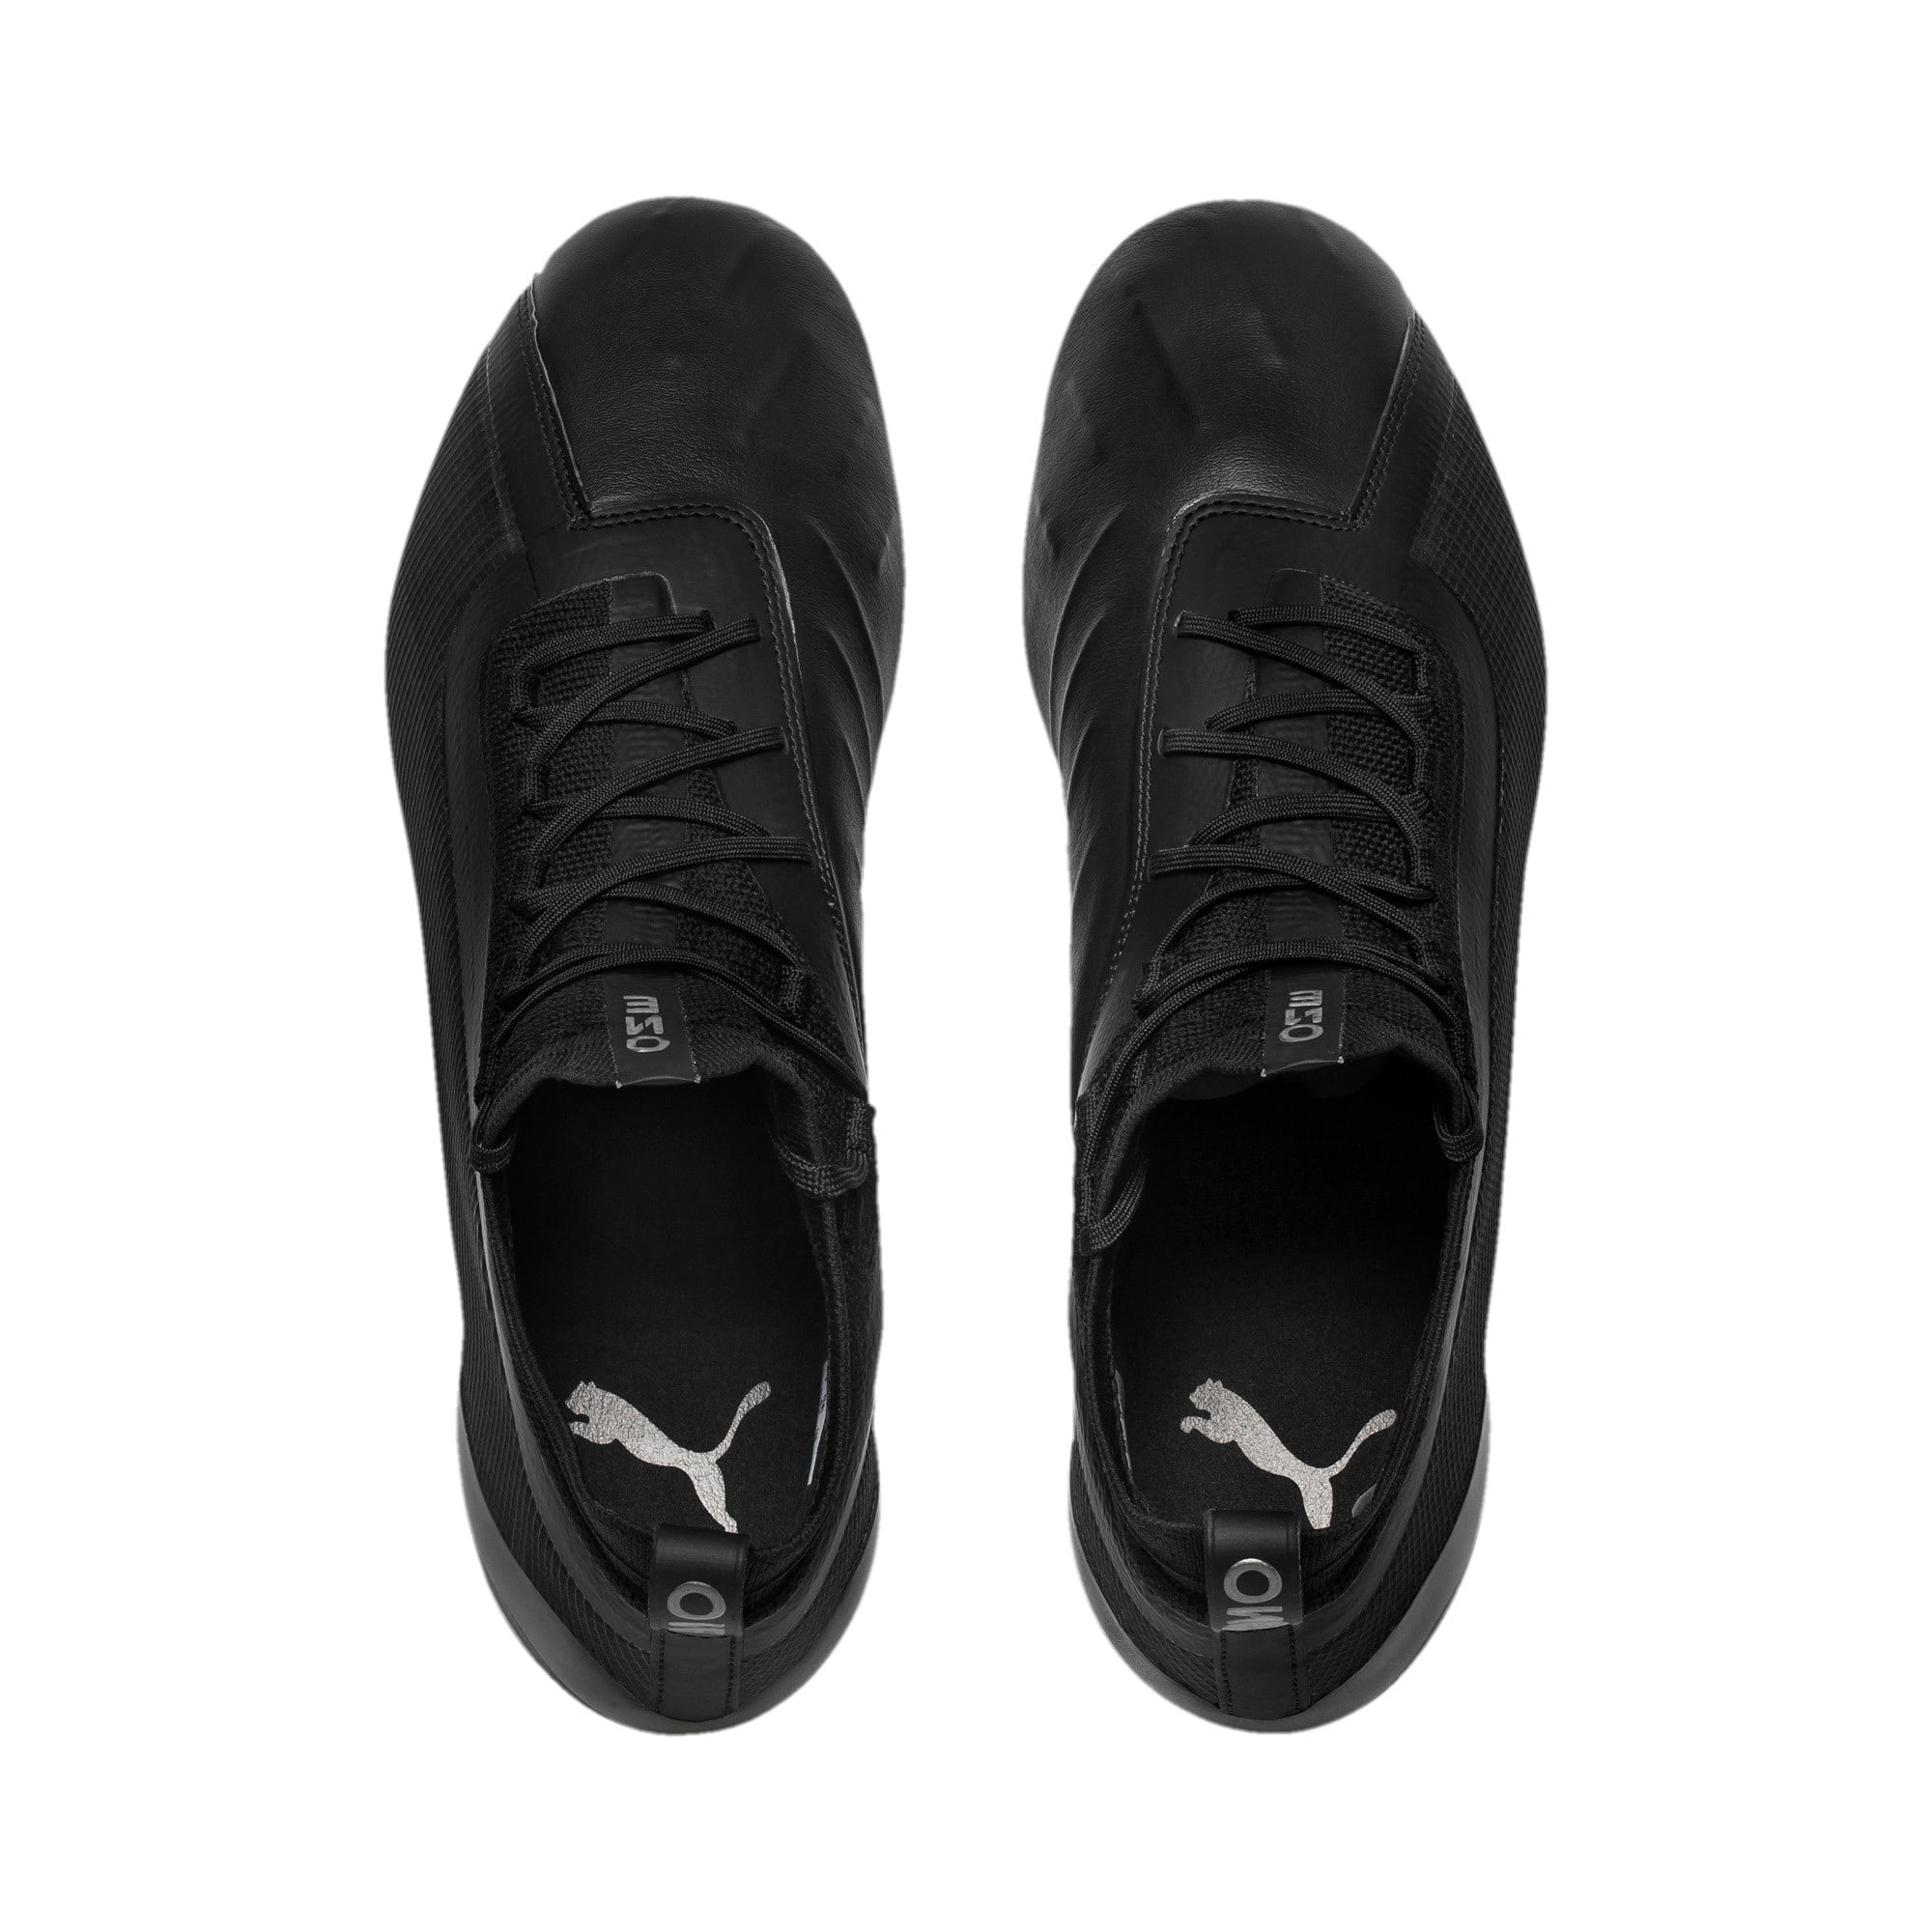 Thumbnail 6 of PUMA ONE 5.1 evoKNIT FG/AG Men's Football Boots, Black-Black-Puma Aged Silver, medium